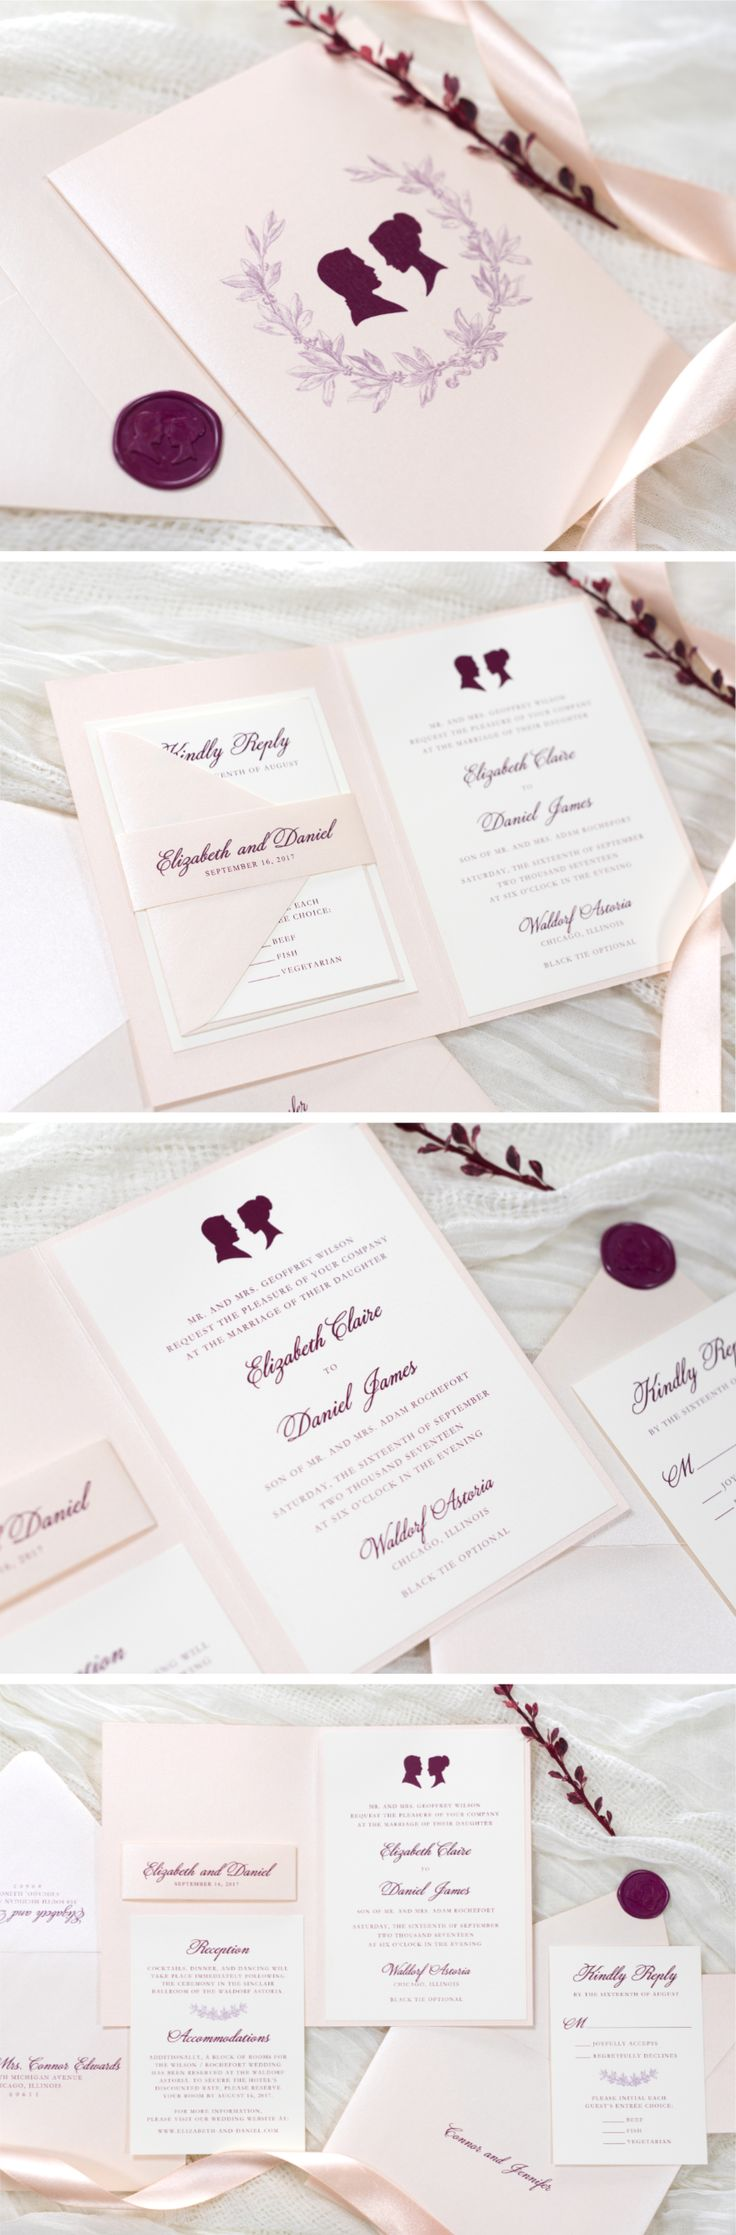 Folding Blush Burgundy and Opal Shimmer Wedding